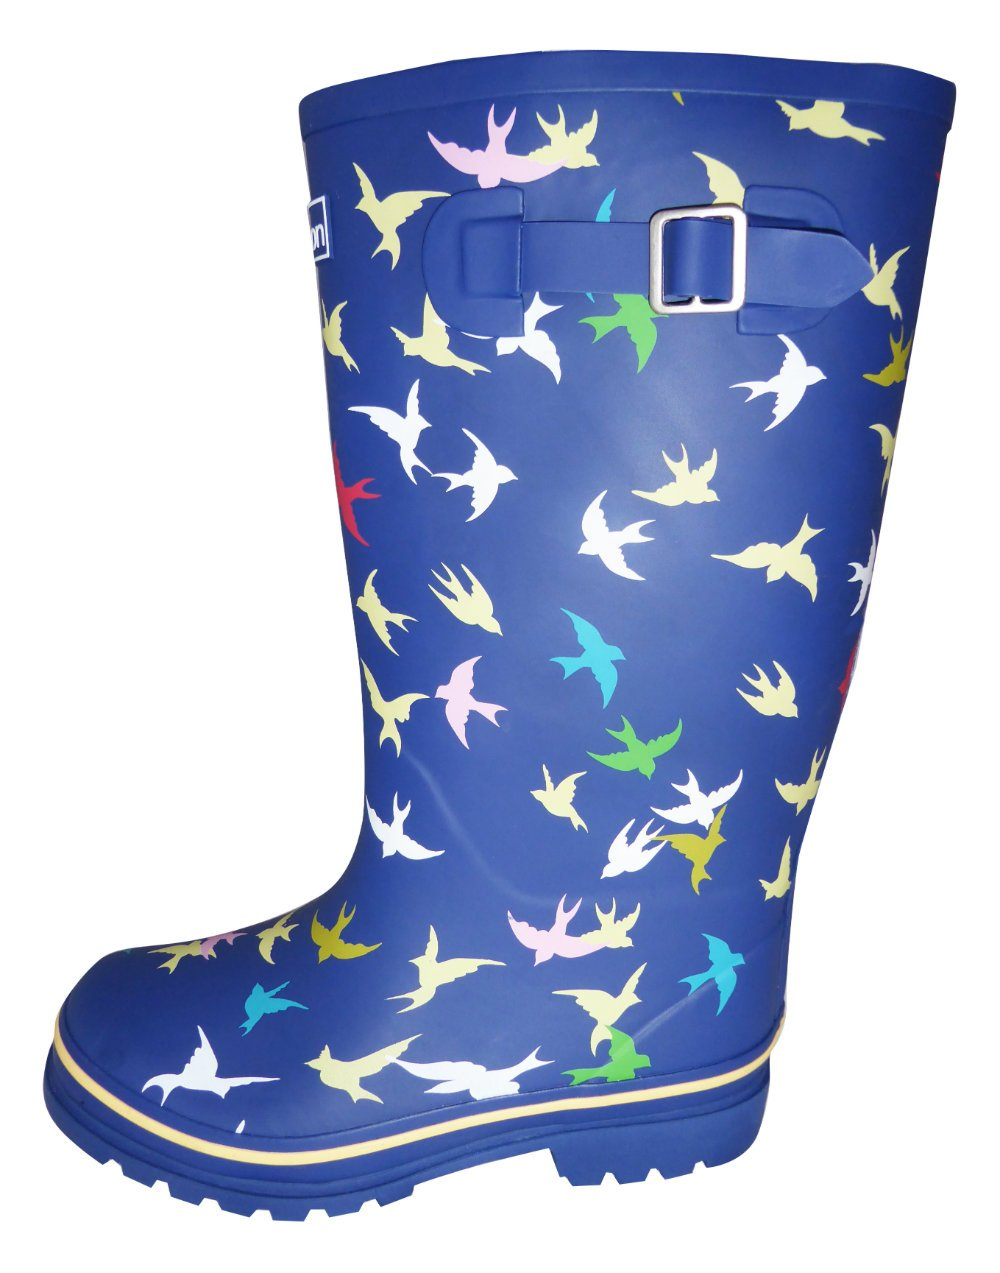 Jileon Wide Calf All Weather Durable Rubber Rain Boots for Women-Fits Calf Sizes up to 18 inches B01EI0E7U6 9 W (Wide) US Navy Blue With Birds